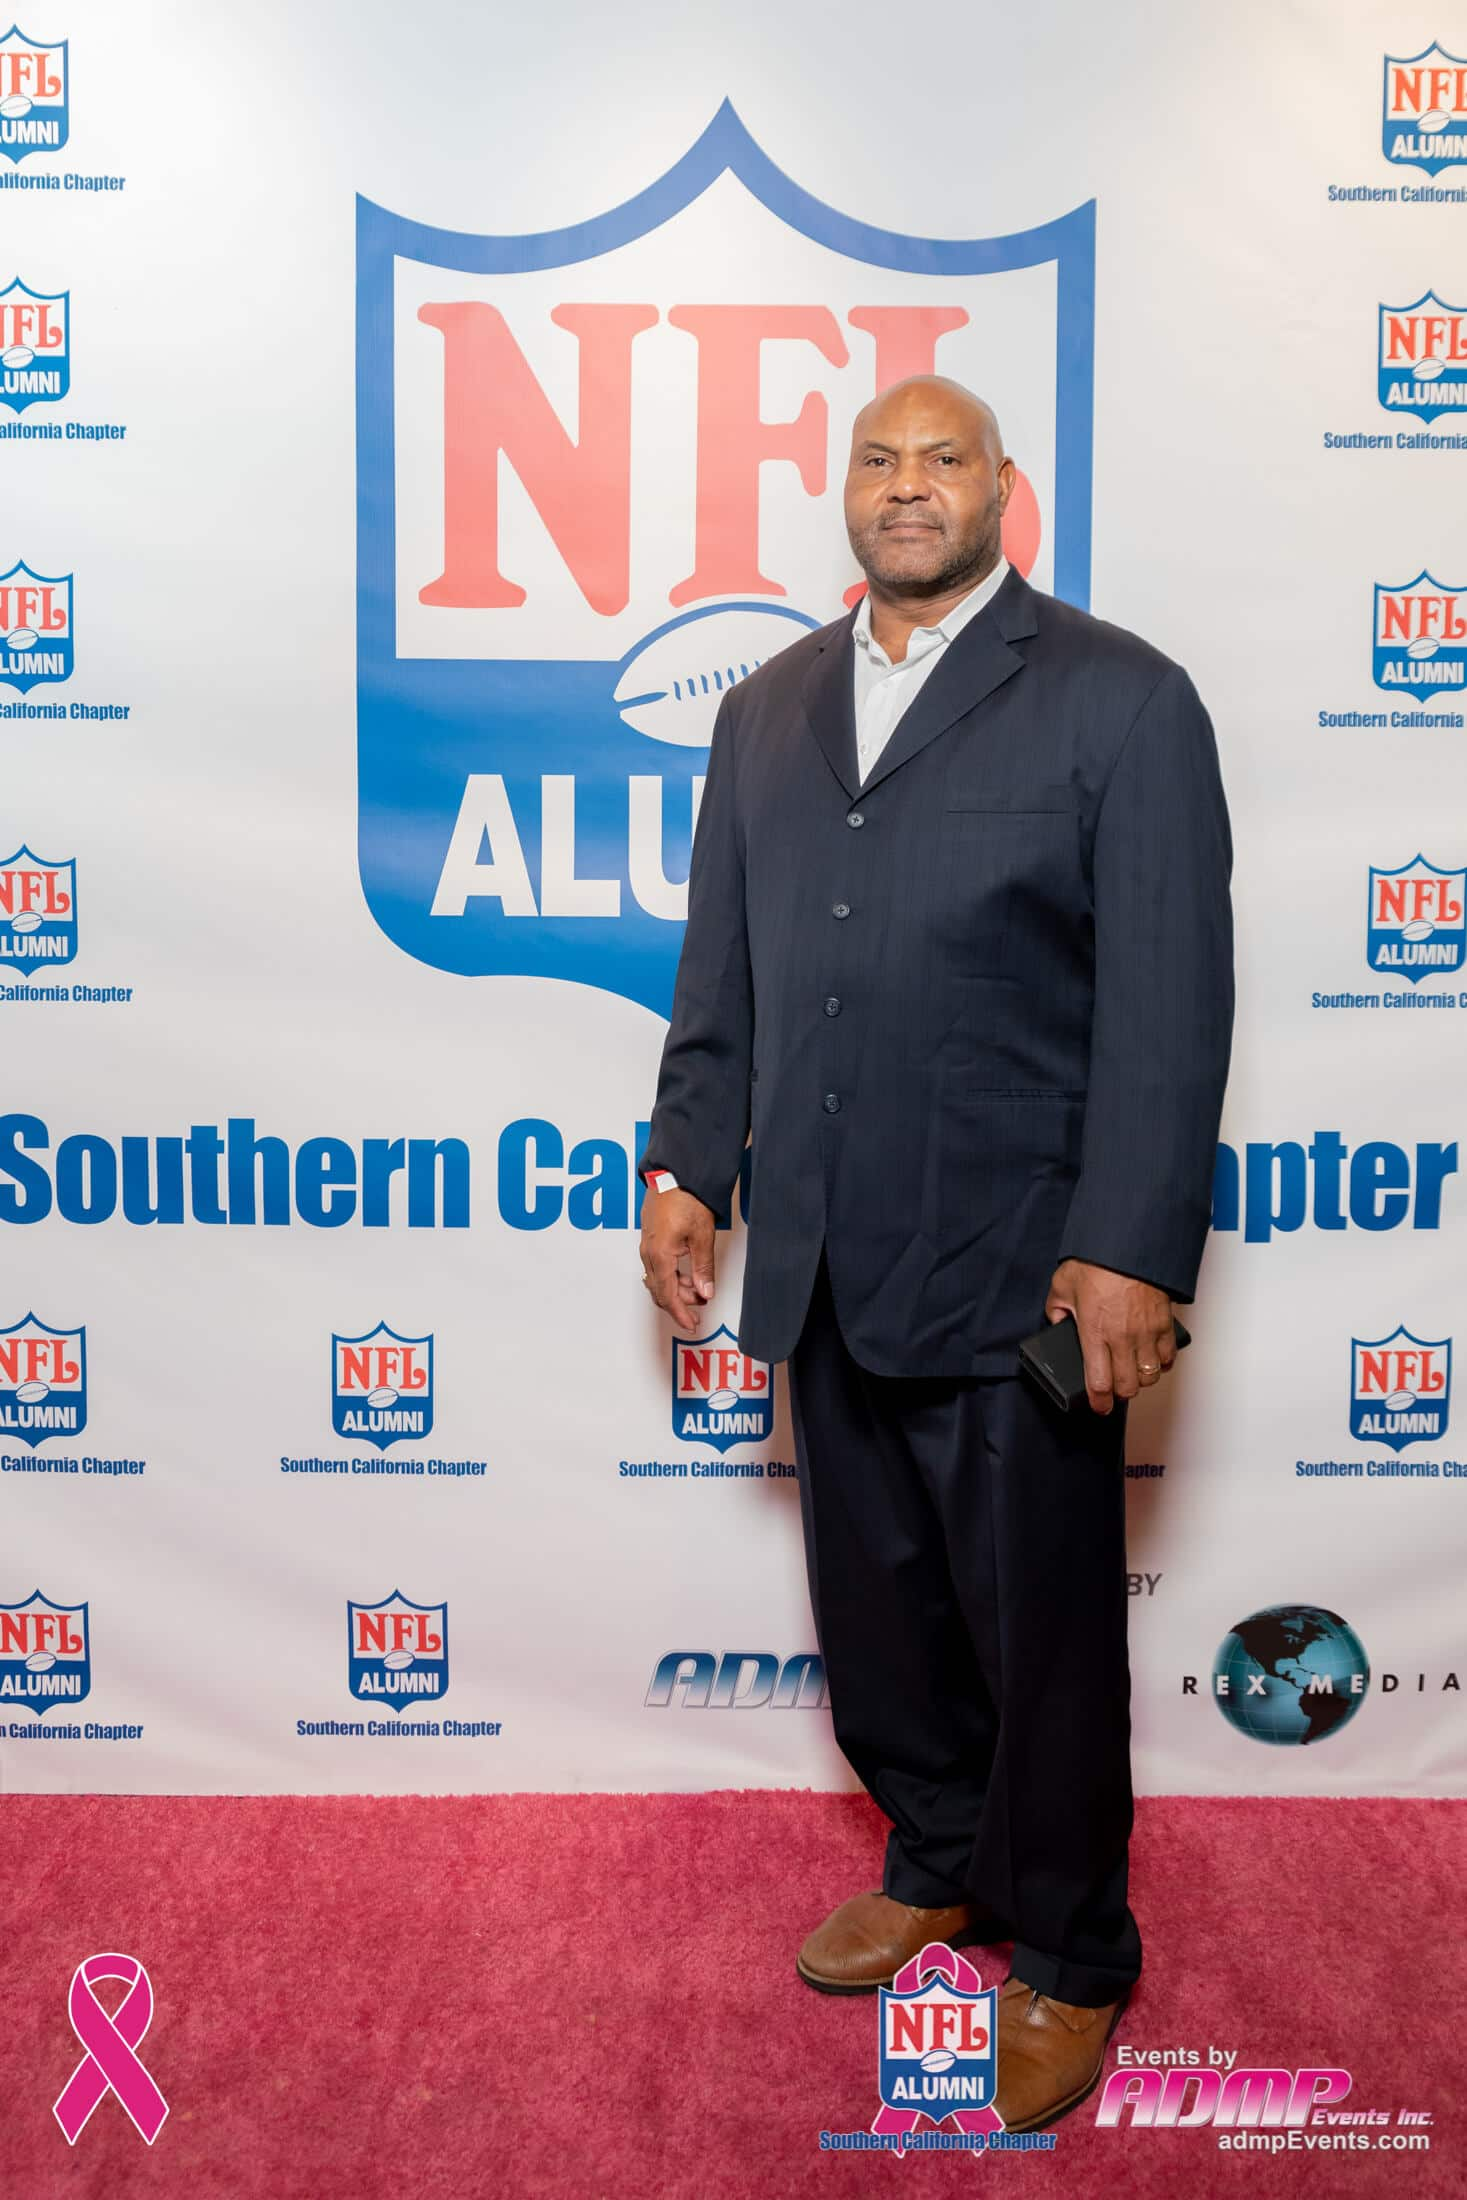 NFL Alumni SoCal Charity Event Series Breast Cancer Event 10-14-19-317